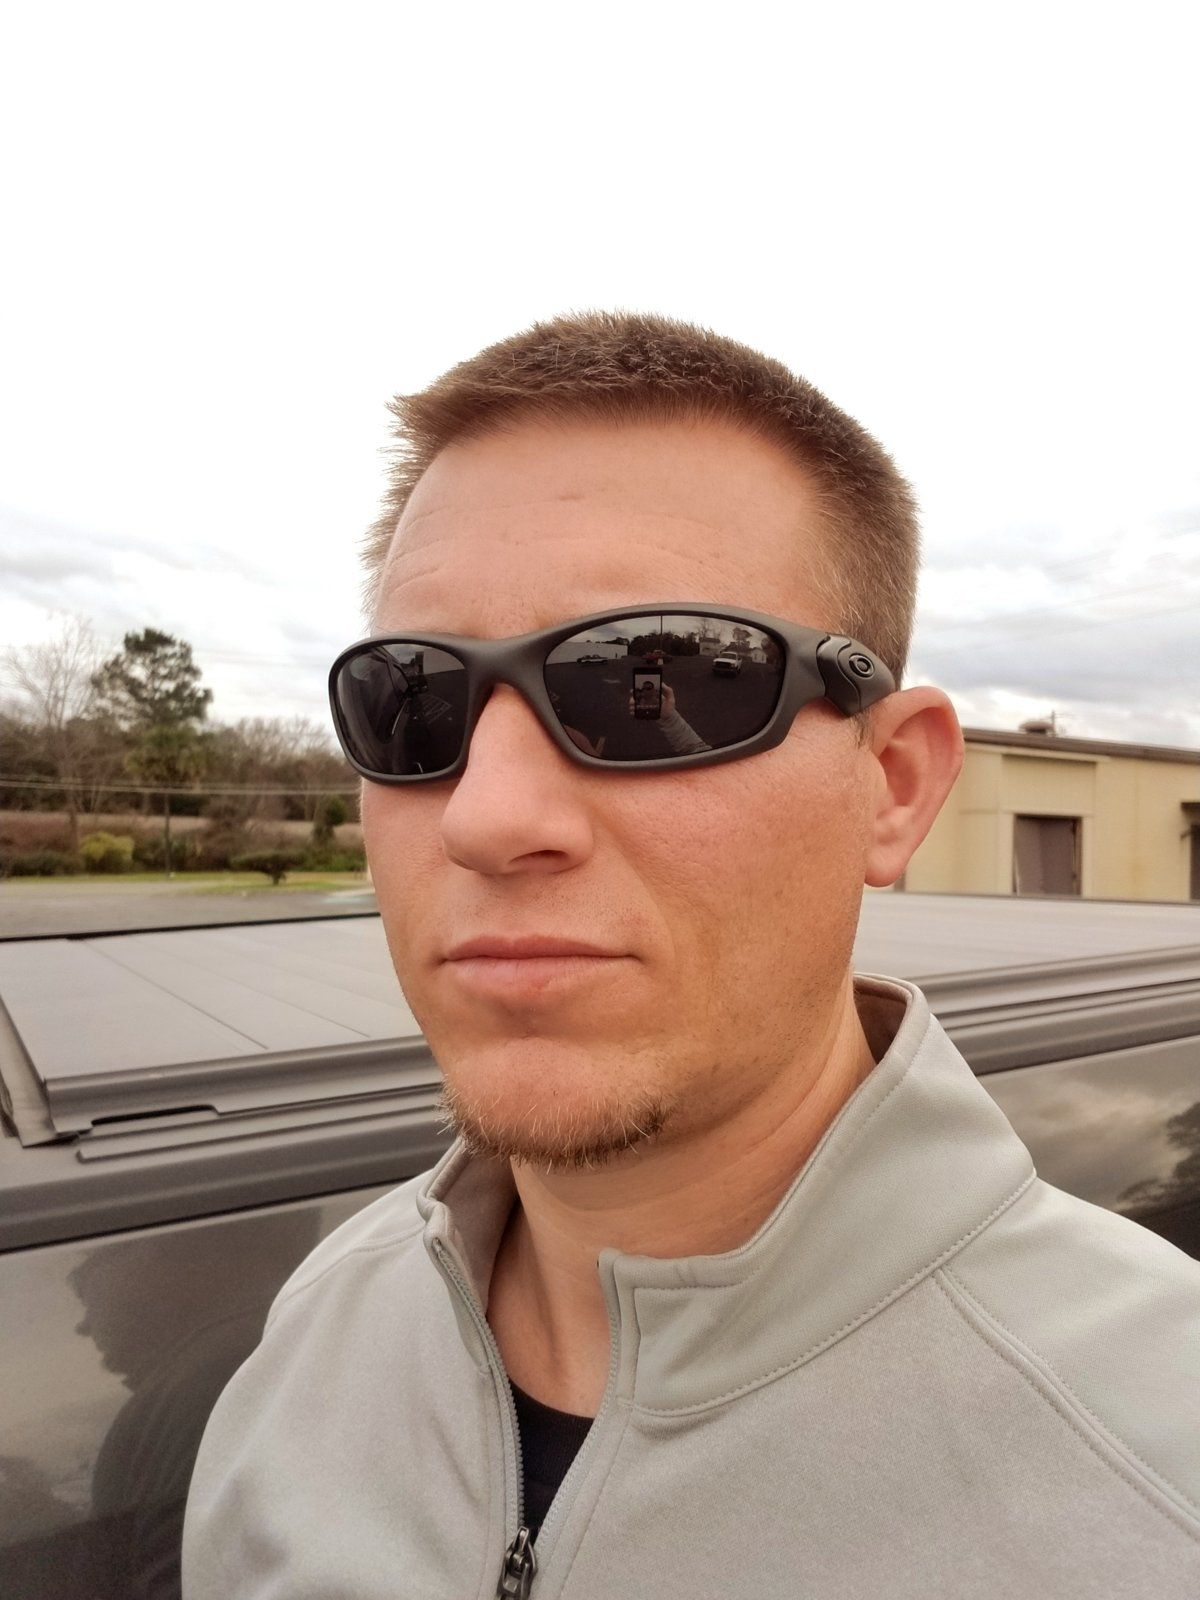 What Oakleys Are You Wearing Today?? - 20190112_165220.jpg